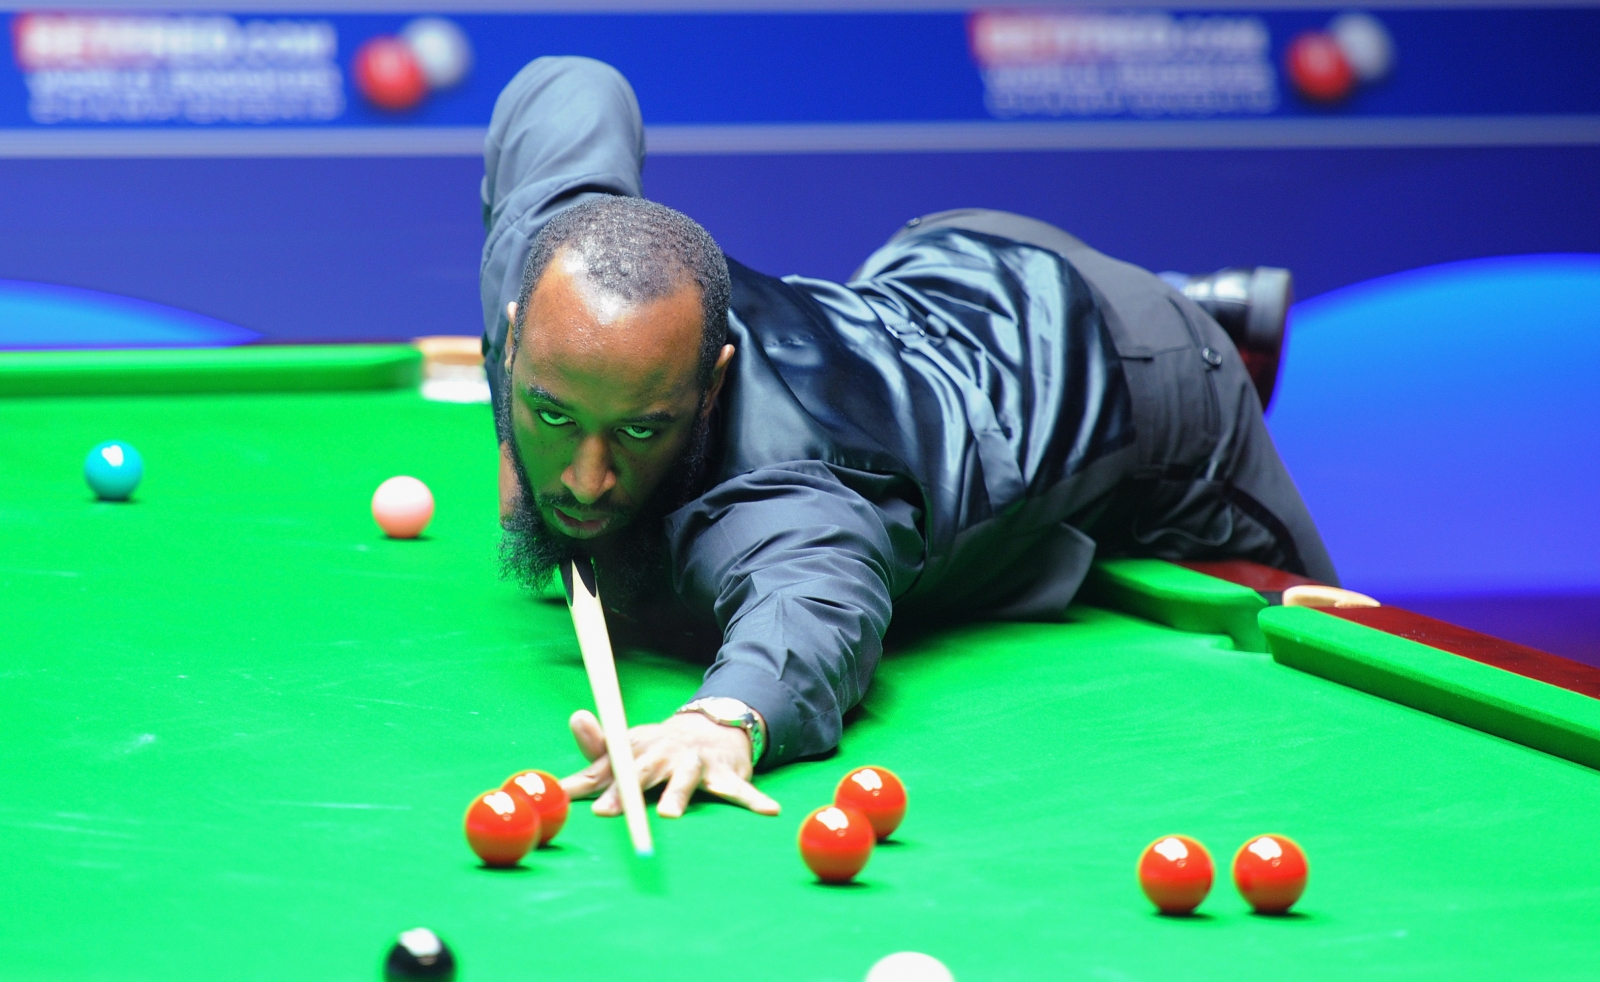 Rory McLeod of England plays a shot during his round two game on day ten of the Betfred.com World Snooker Championship at the Crucible Theatre on April 25, 2011 in Sheffield, England.